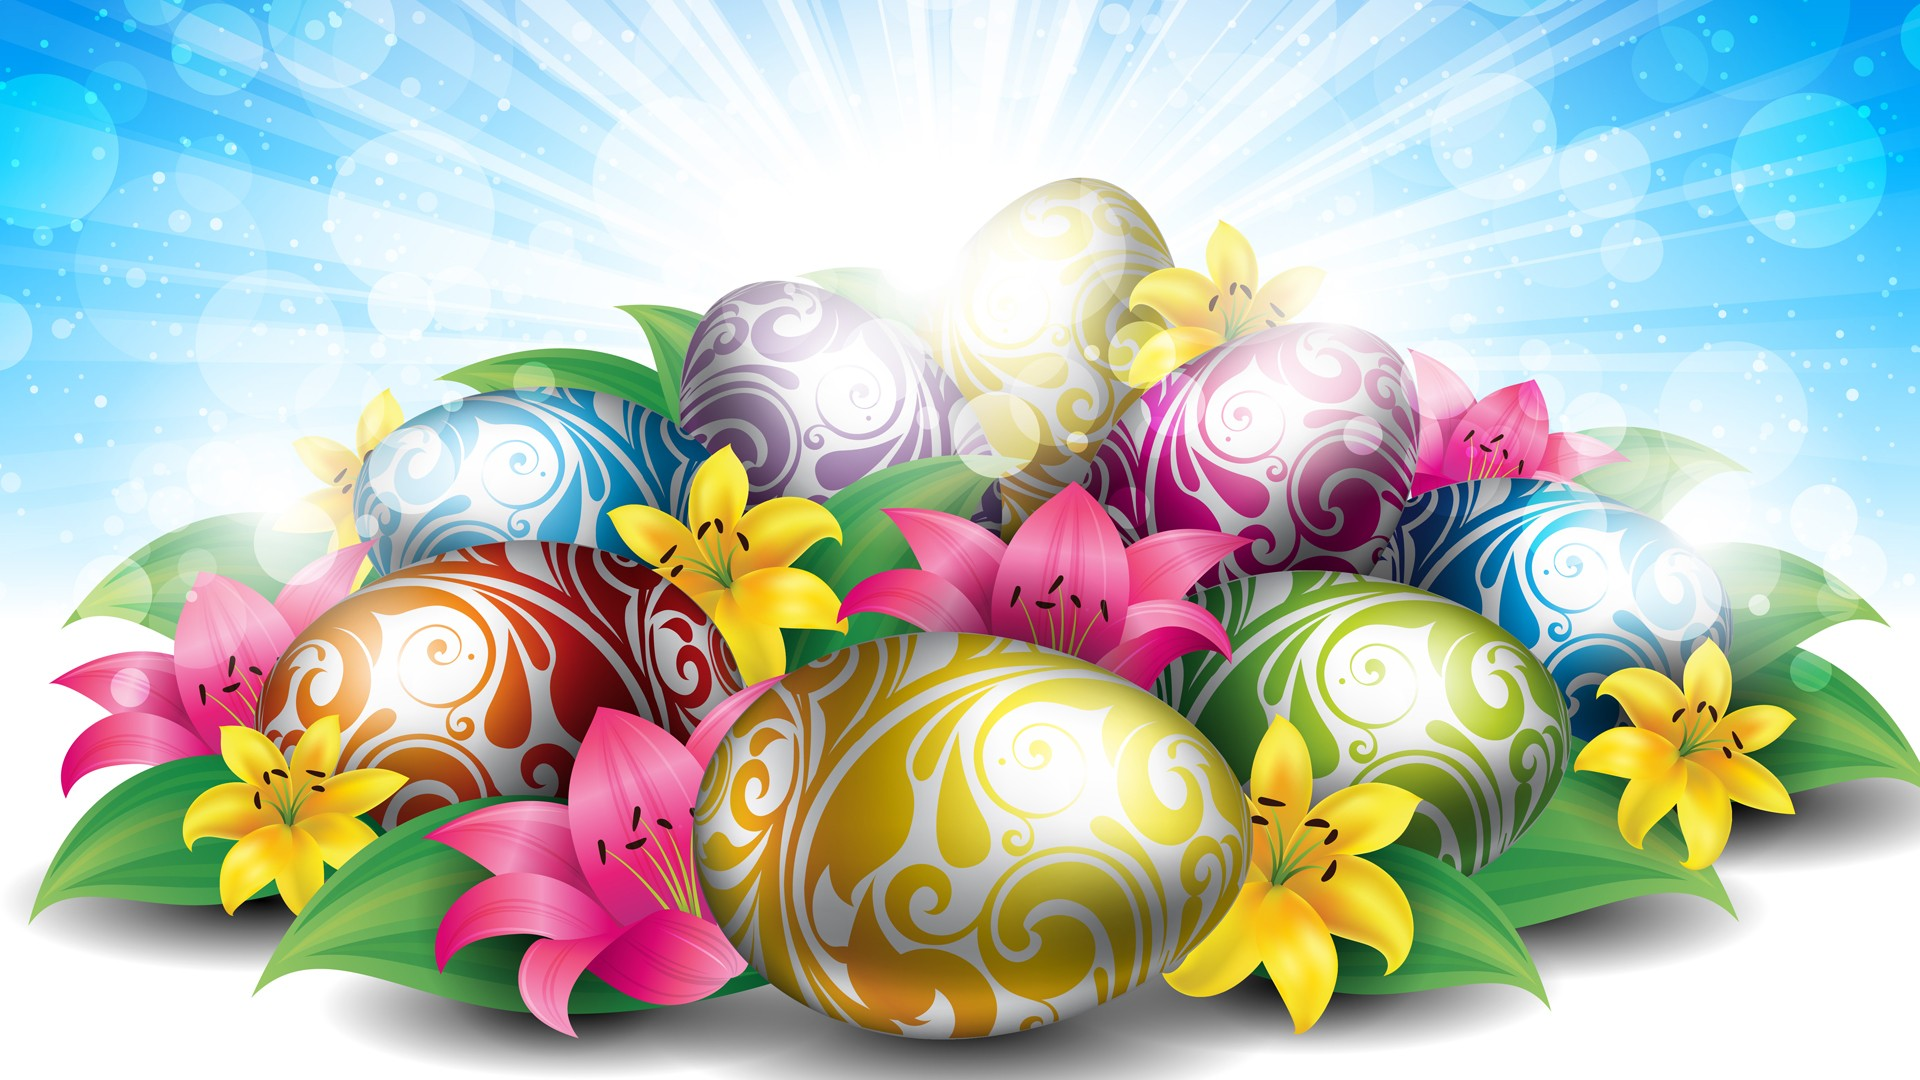 HD Easter Wallpaper - WallpaperSafari